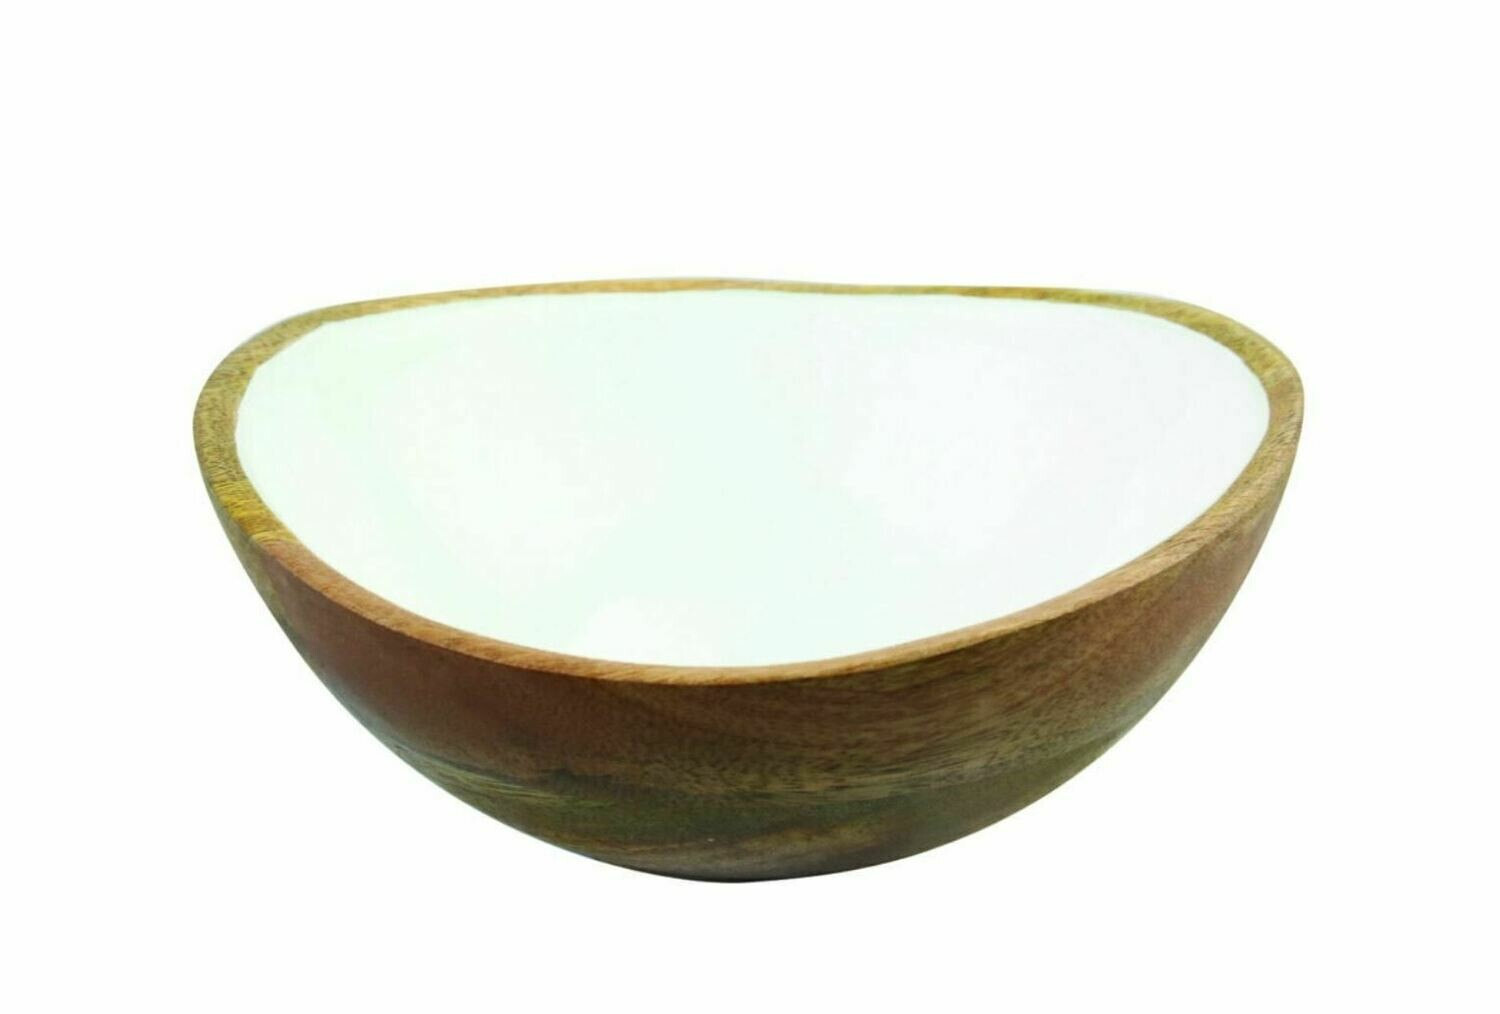 BH002 Mango Wood + White Enamel Bowl, Medium